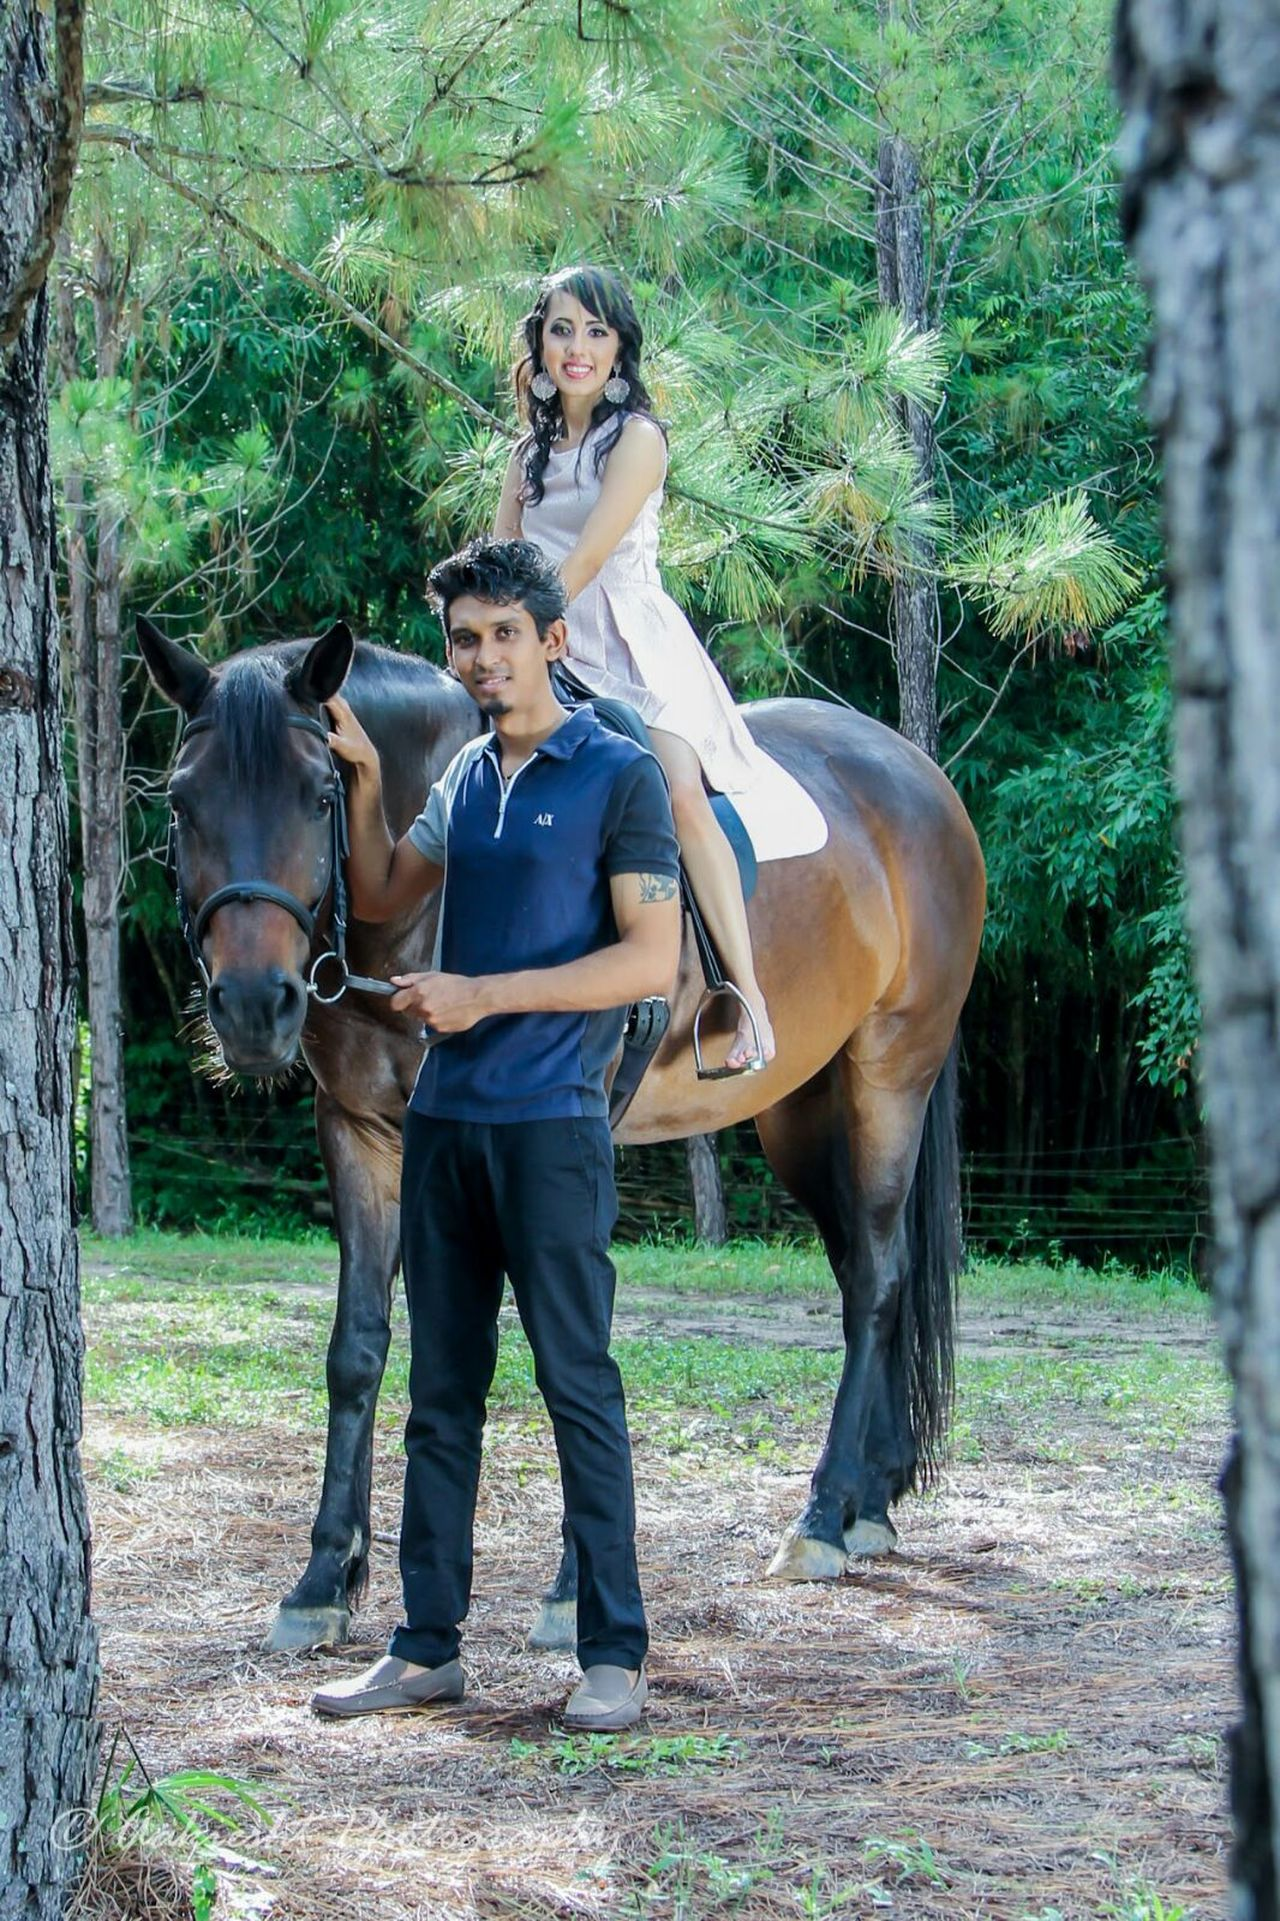 Couples Shoot Love Horse Domestic Animals Bonding Riding Full Length Togetherness Livestock Front View Mammal Working Animal Leisure Activity Women Nature Outdoors Adults Only Care Adult Tree Friendship Day Engagement First Eyeem Photo